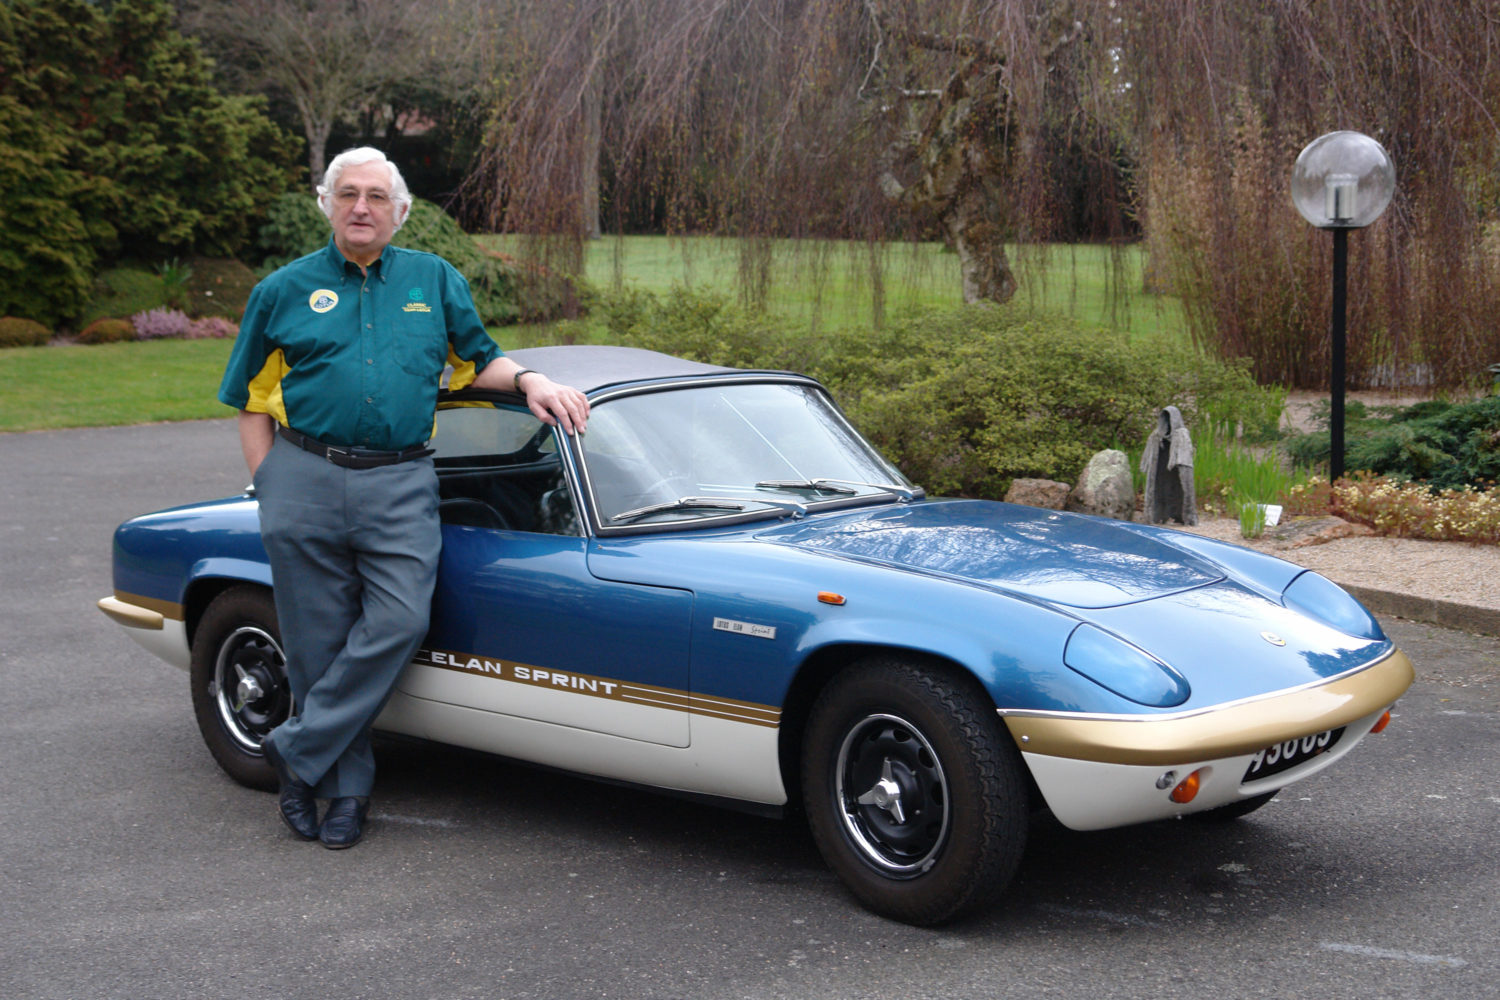 Ron Hickman leaning next to the Lotus Elan